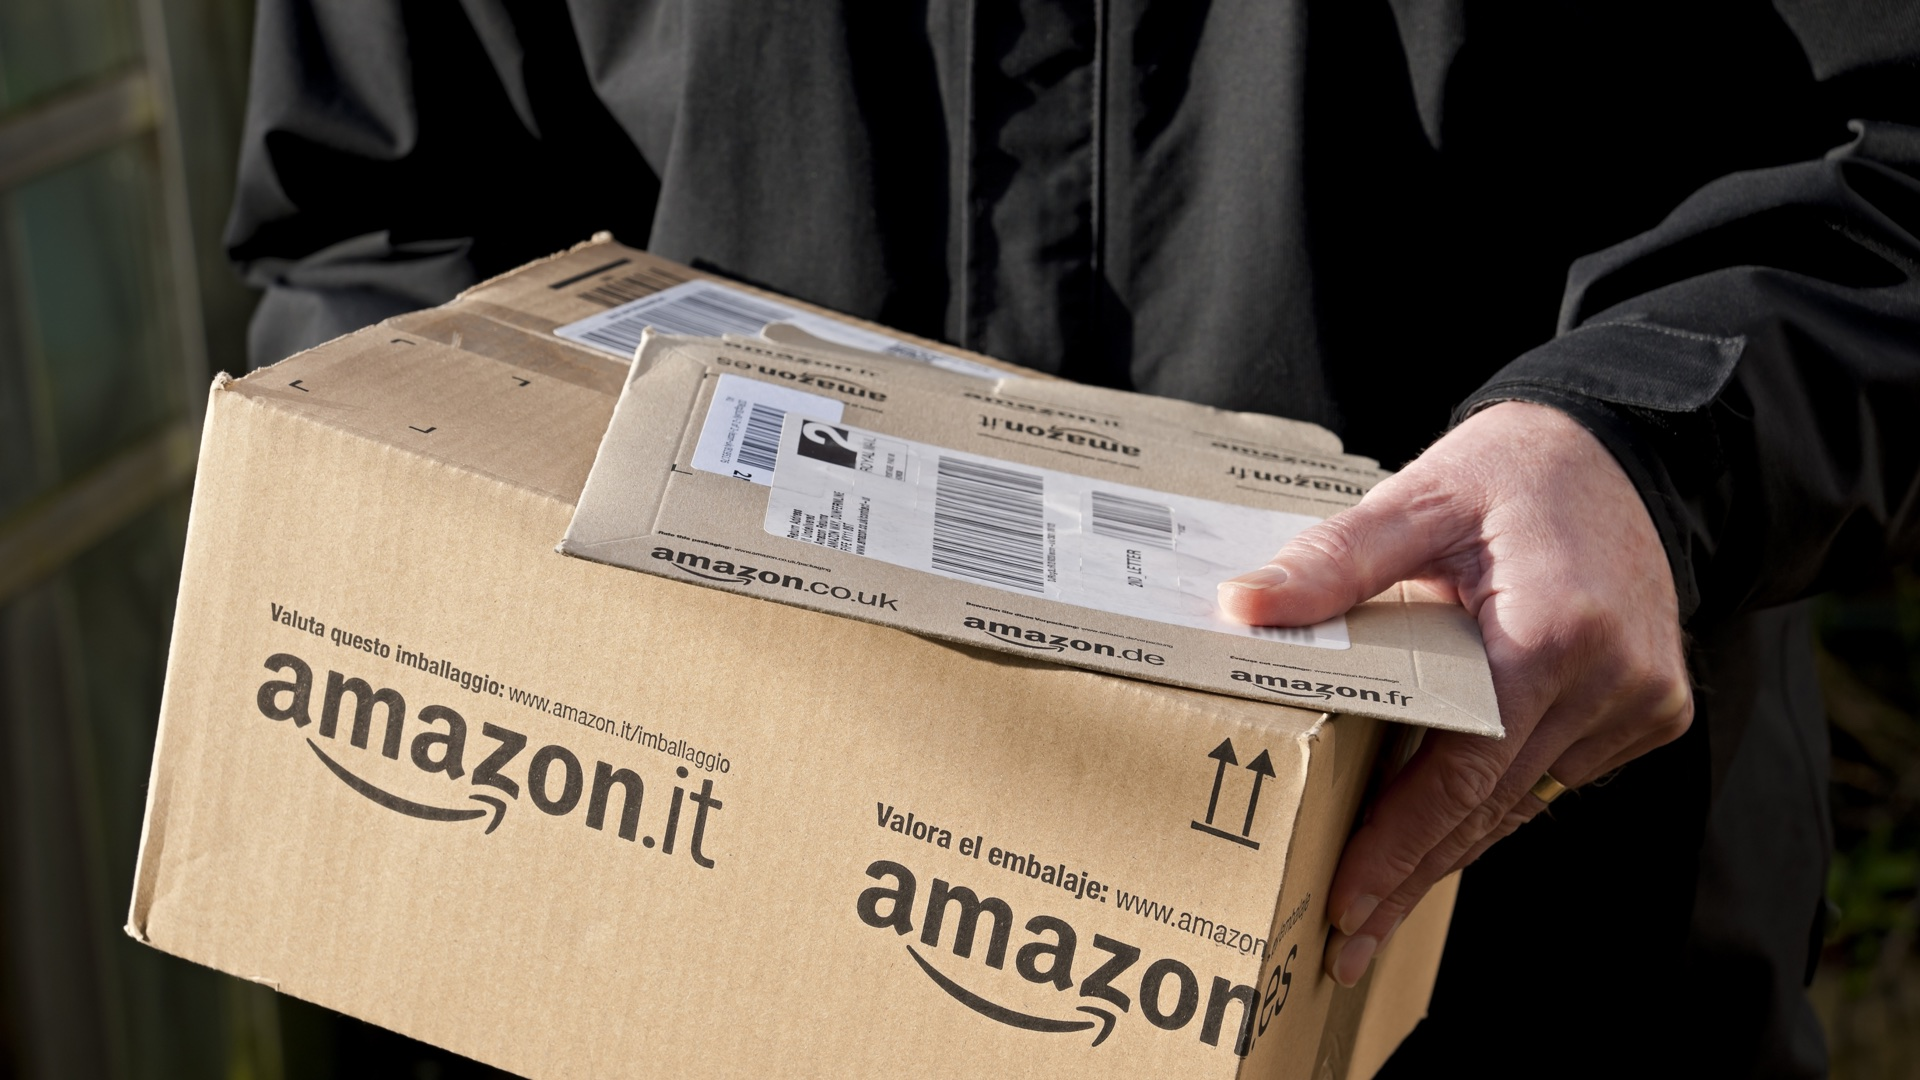 Amazon's 'Frequently Bought Together' Suggestions Show Homemade Bomb Ingredients